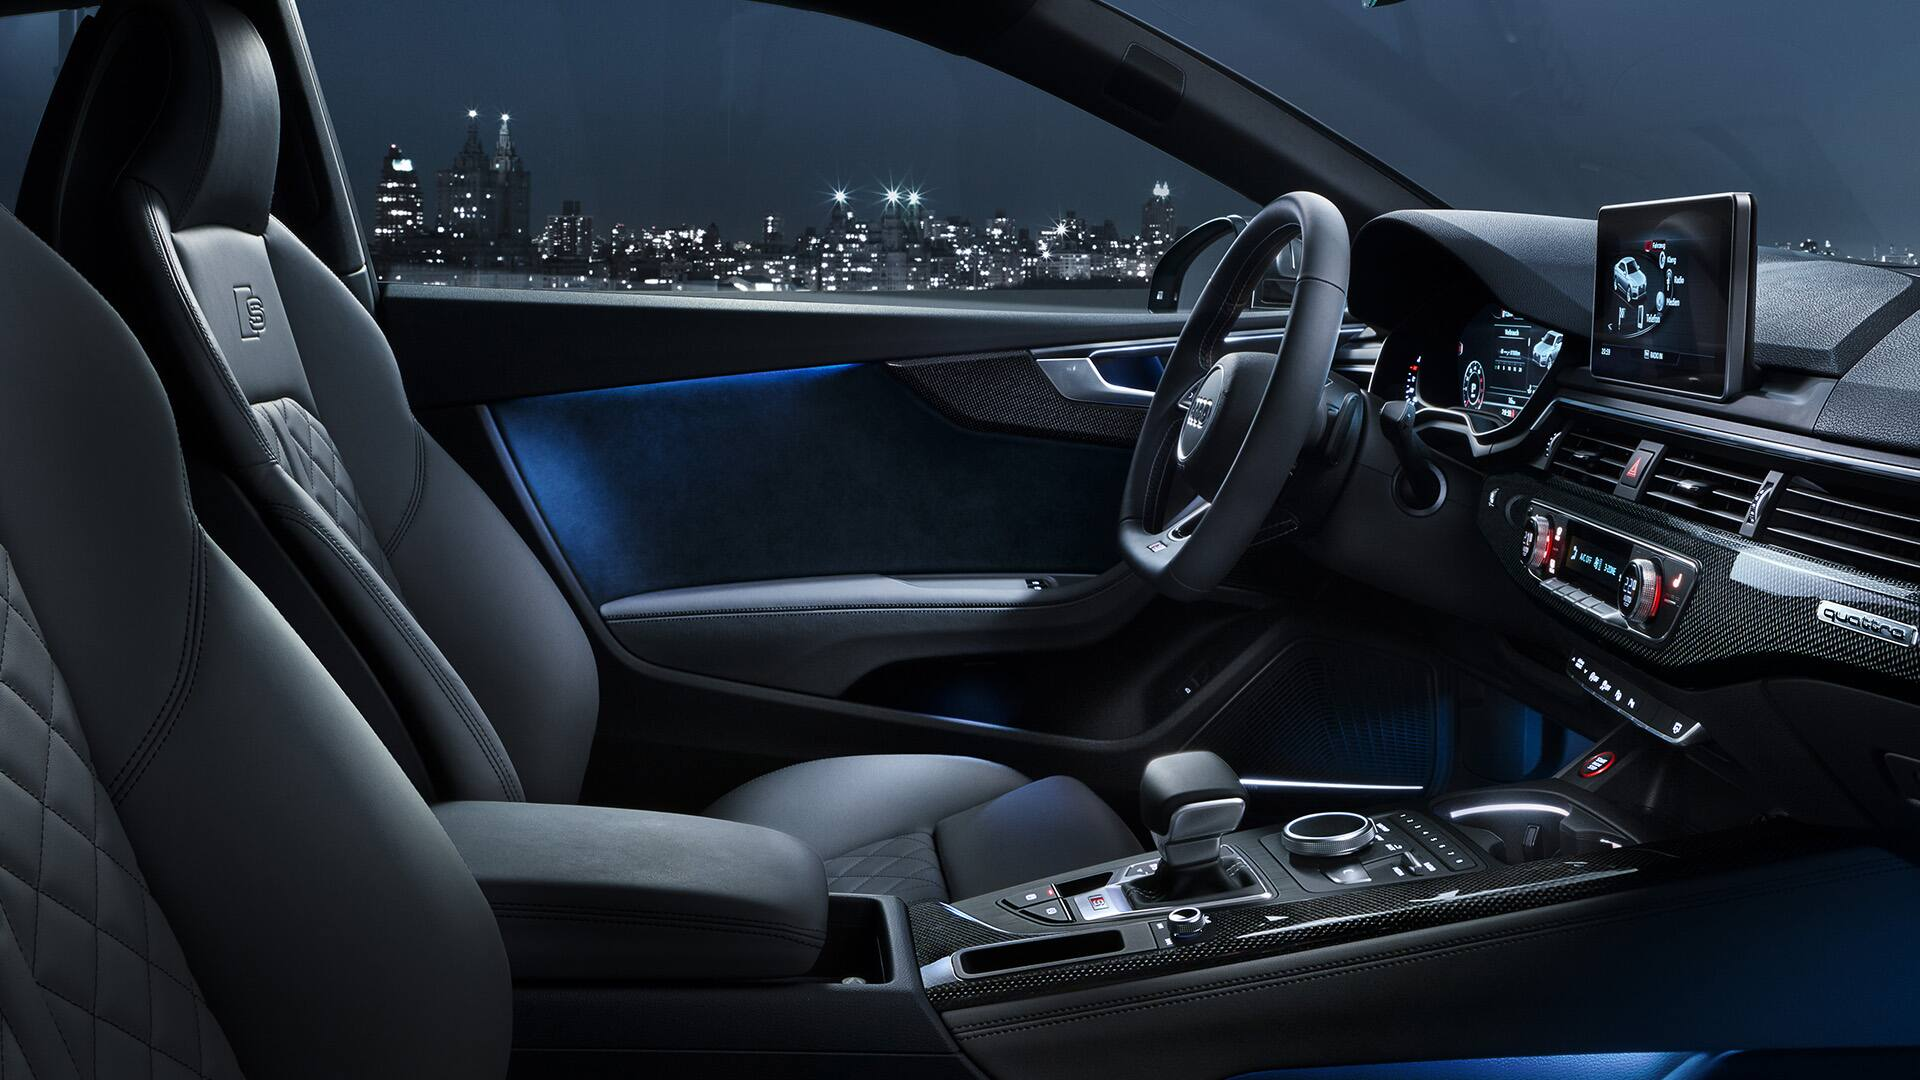 The interior of the S5 Coupé with optional ambient lighting and the  S-sports seats with diamond-stitching.